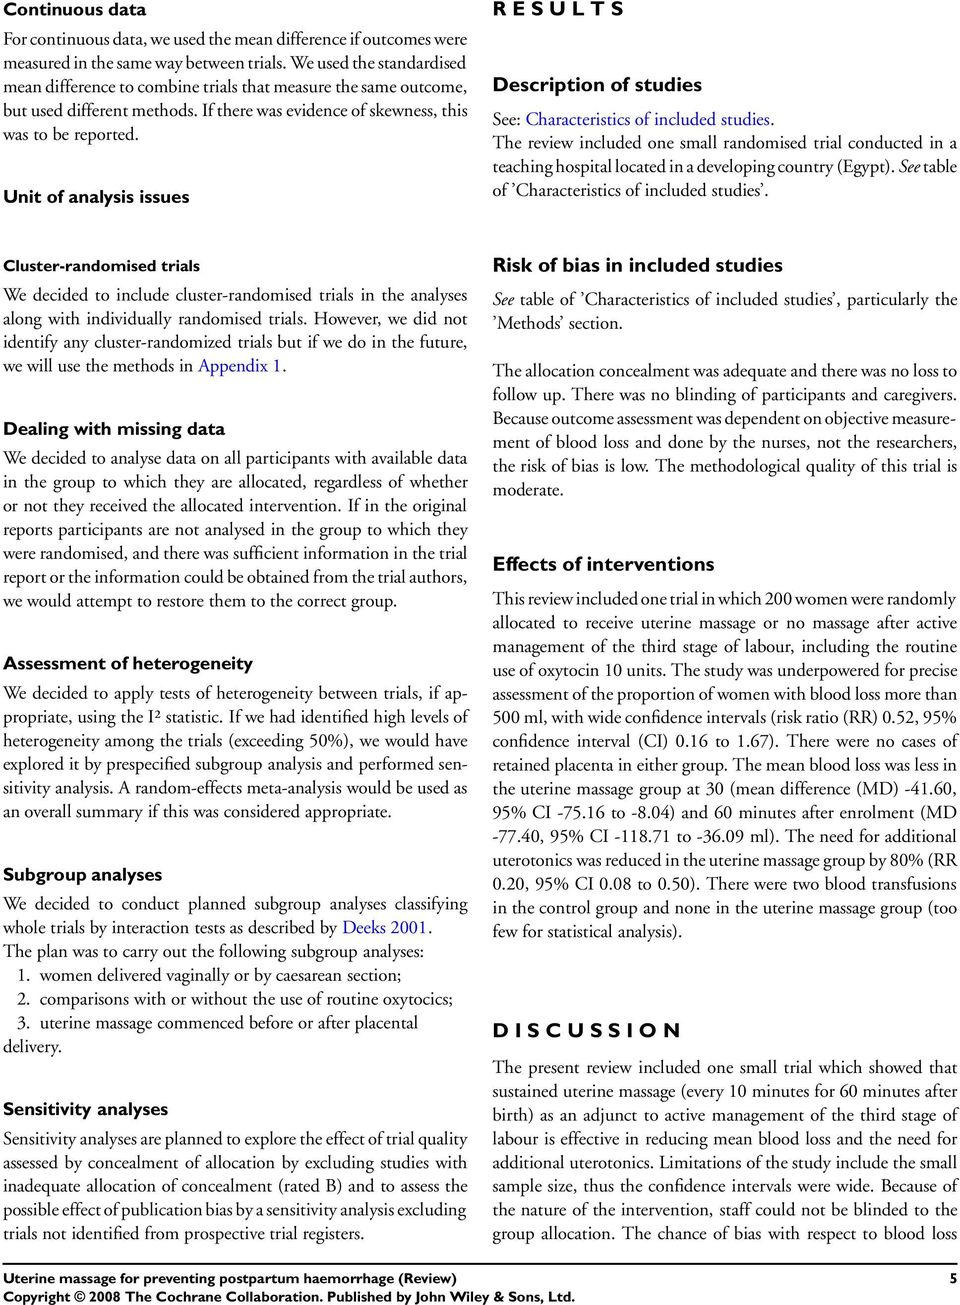 Unit of analysis issues R E S U L T S Description of studies See: Characteristics of included studies.